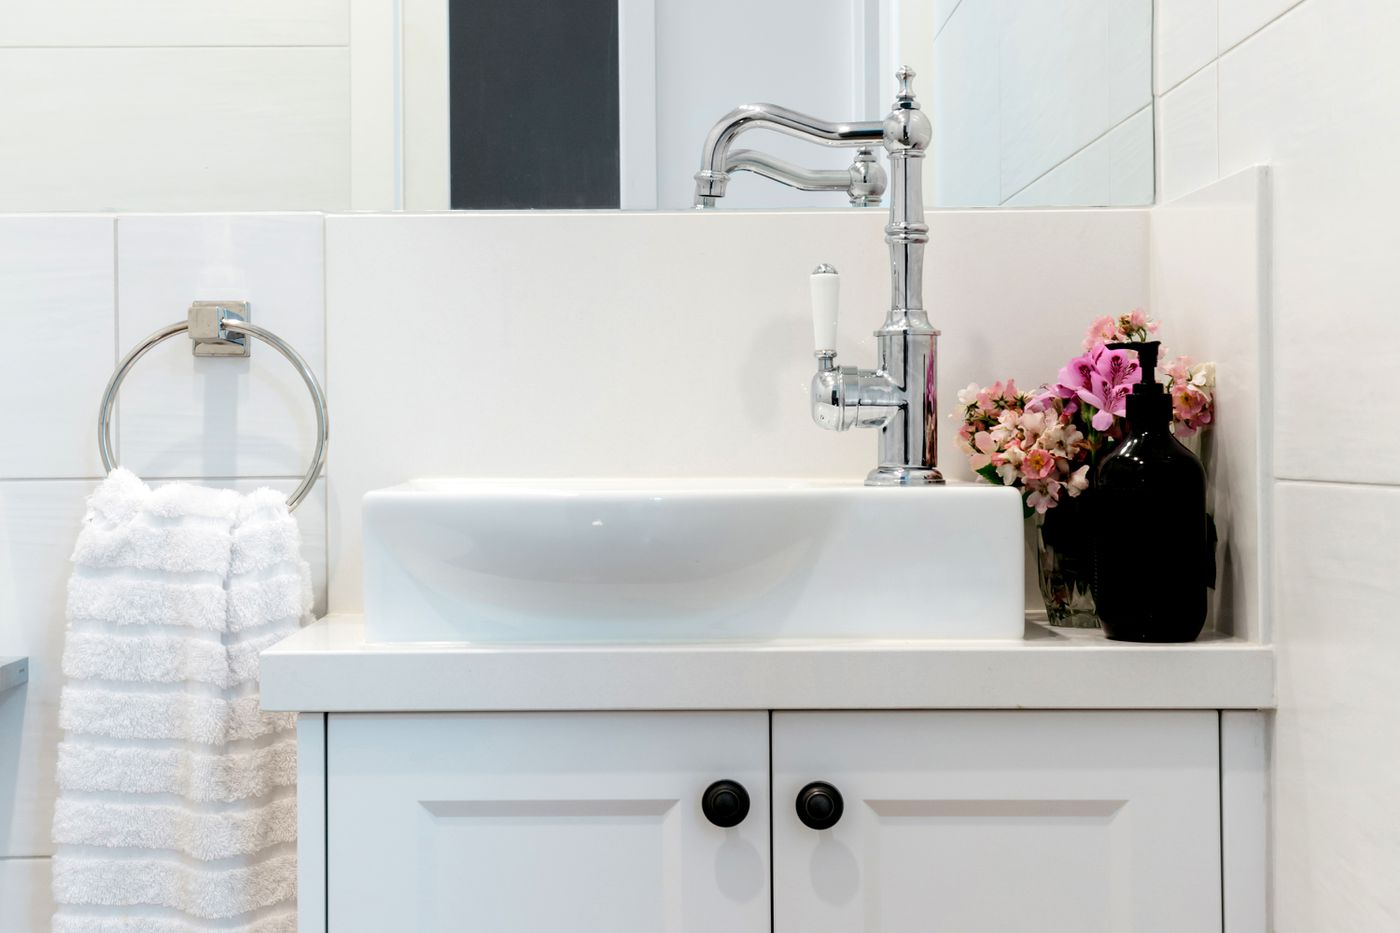 How To Plan Your Space For A Small Bathroom Remodel This Old House